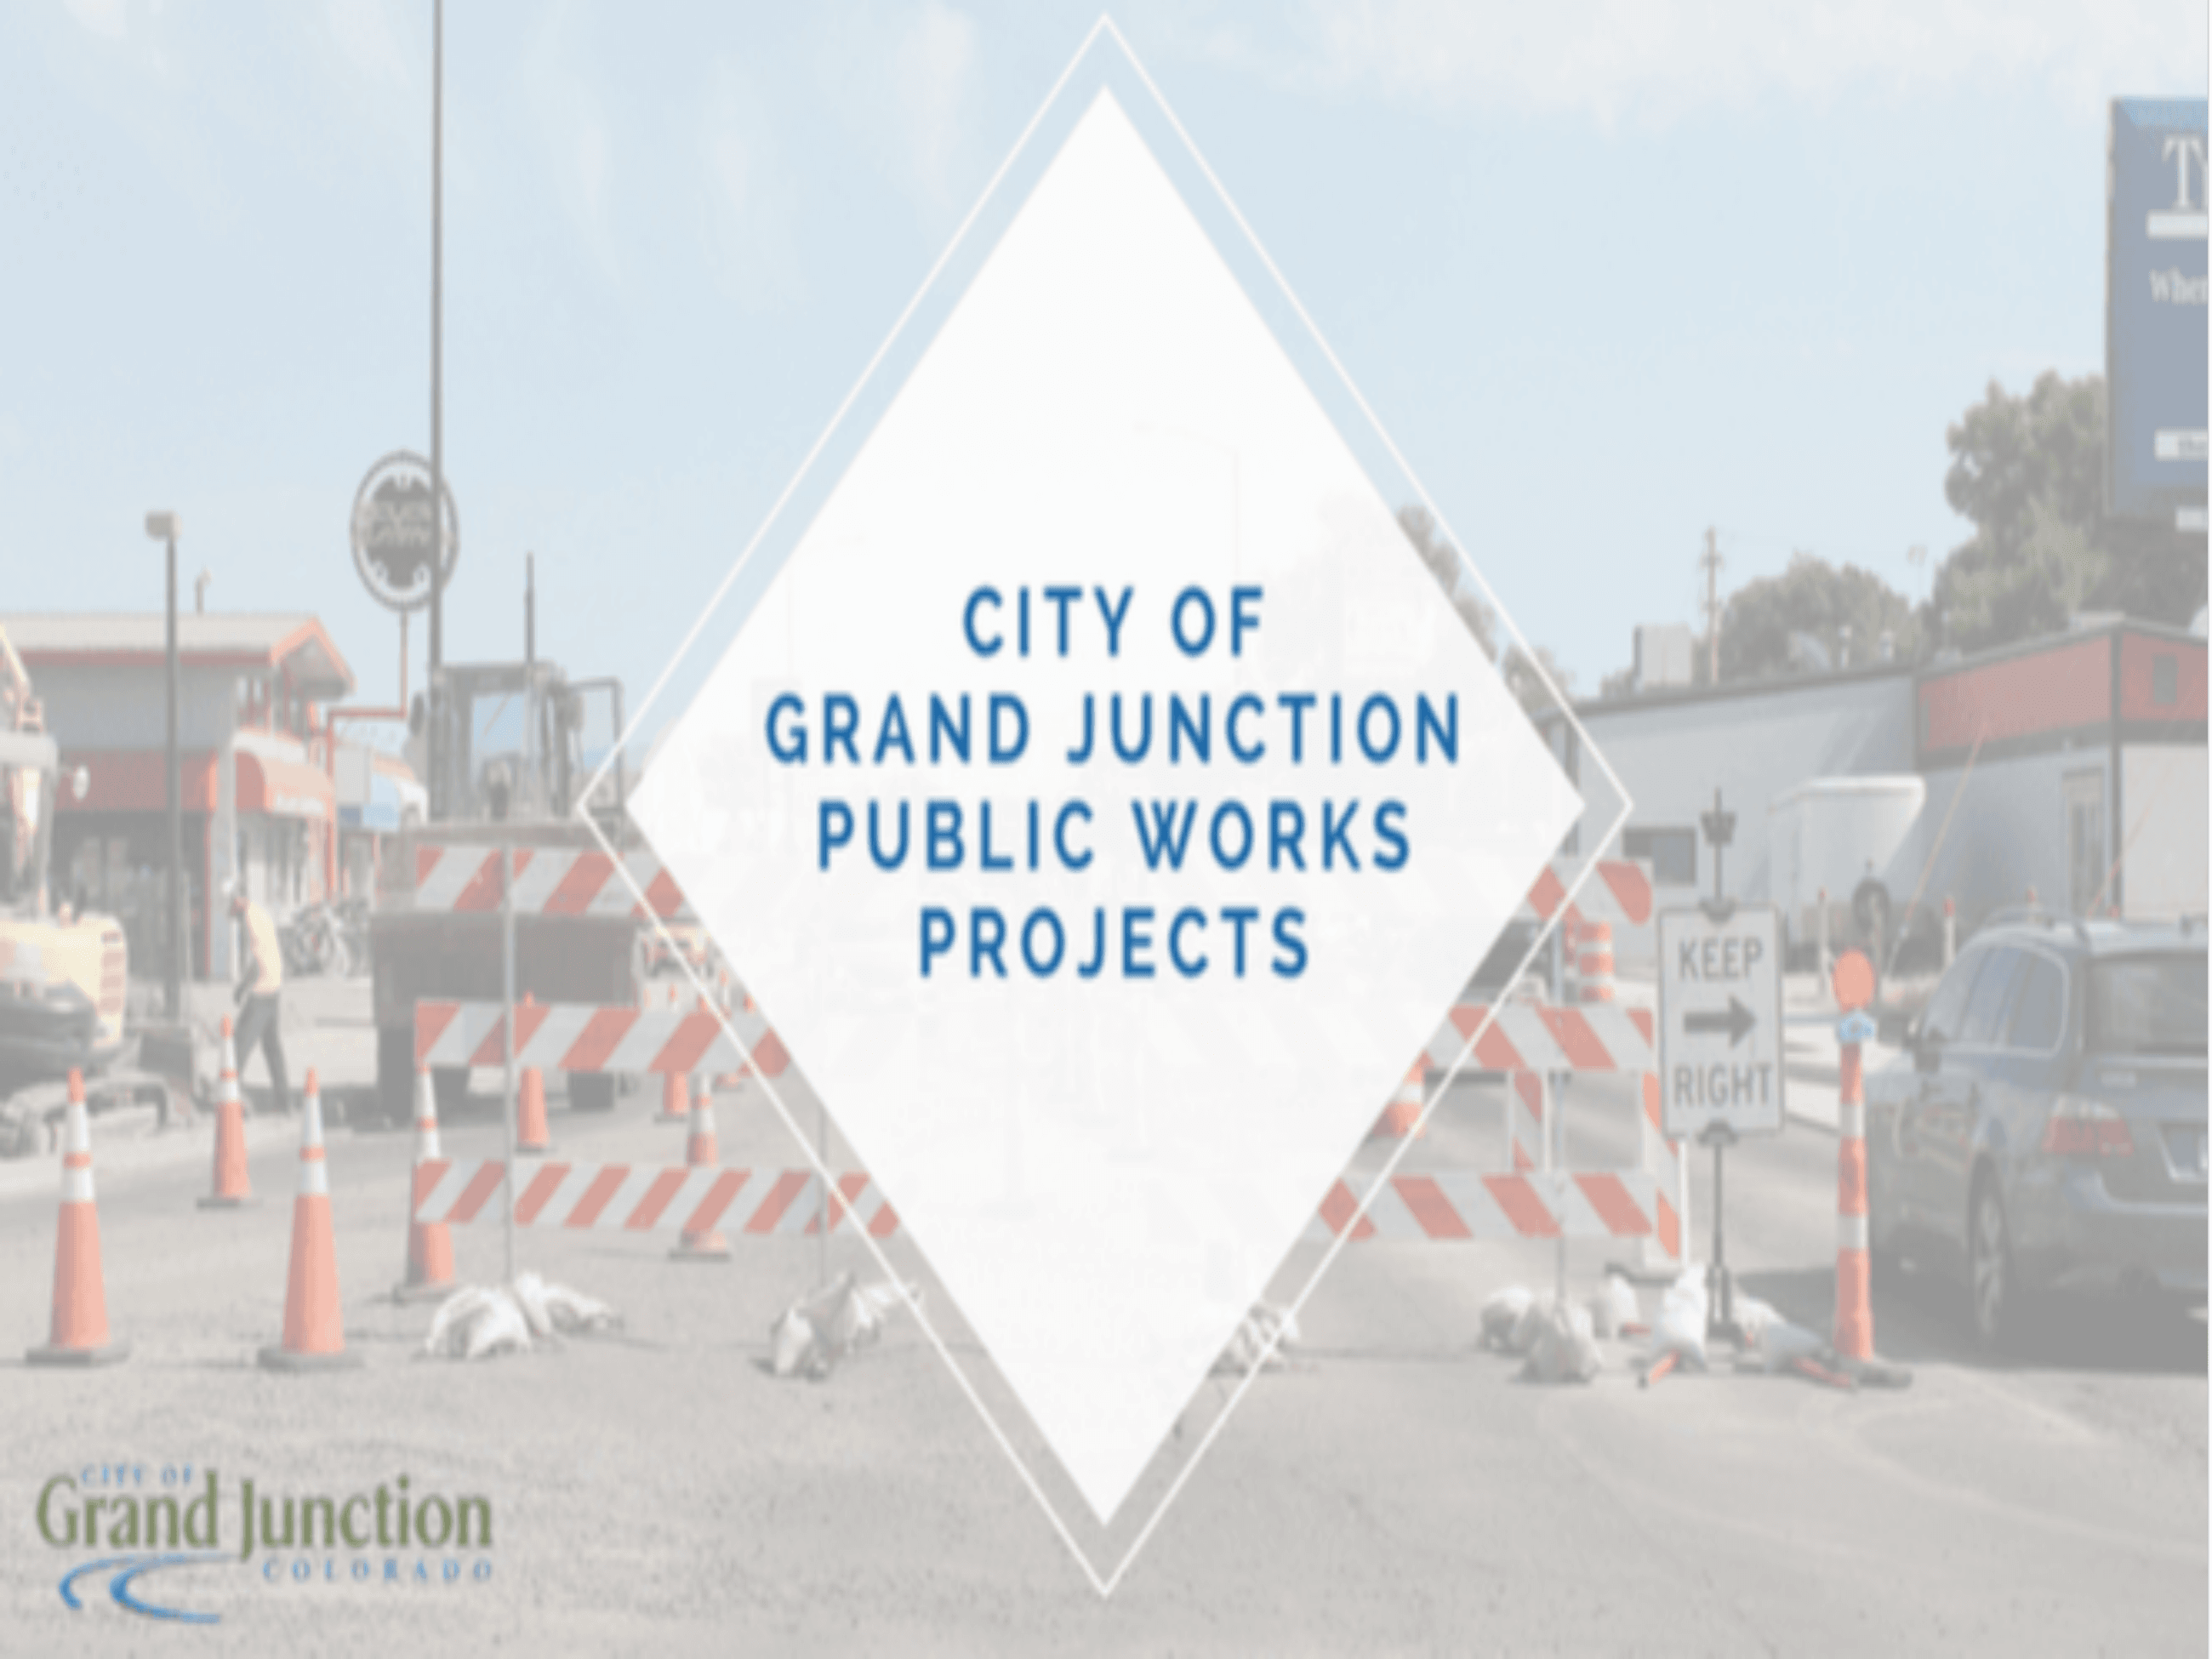 City of Grand Junction Public Works Projects